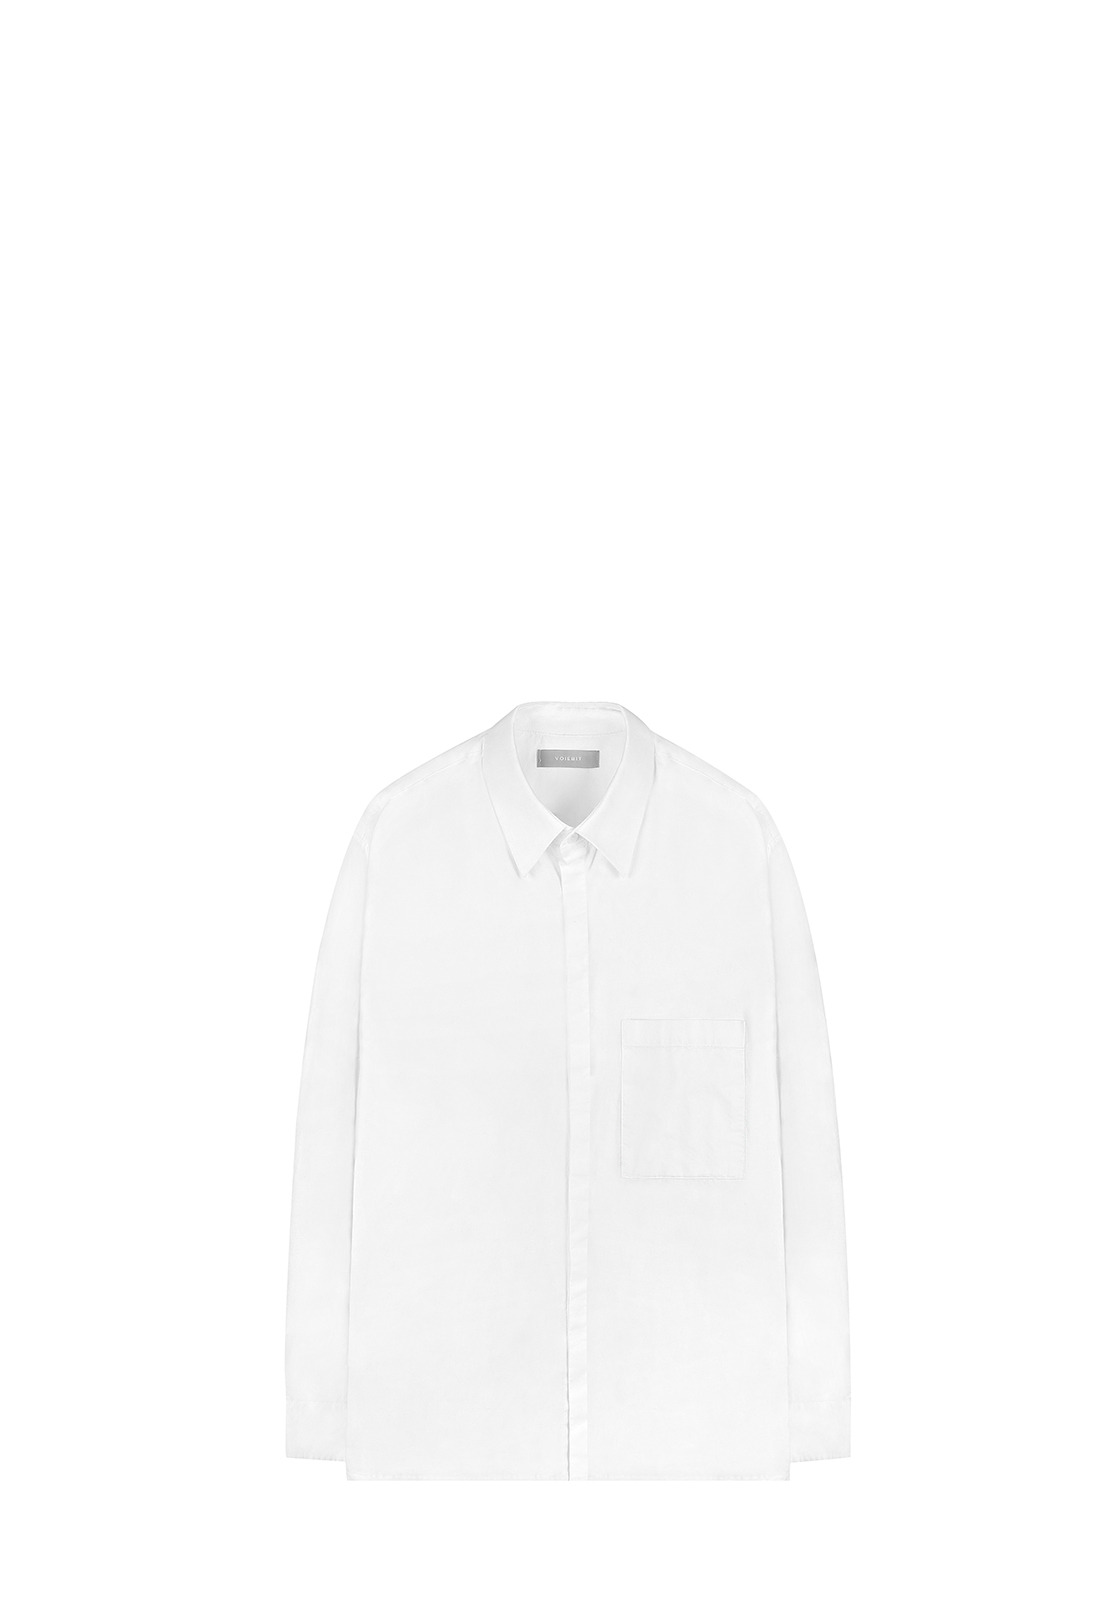 V410 BIG COLLAR HIDDEN SHIRTWHITE